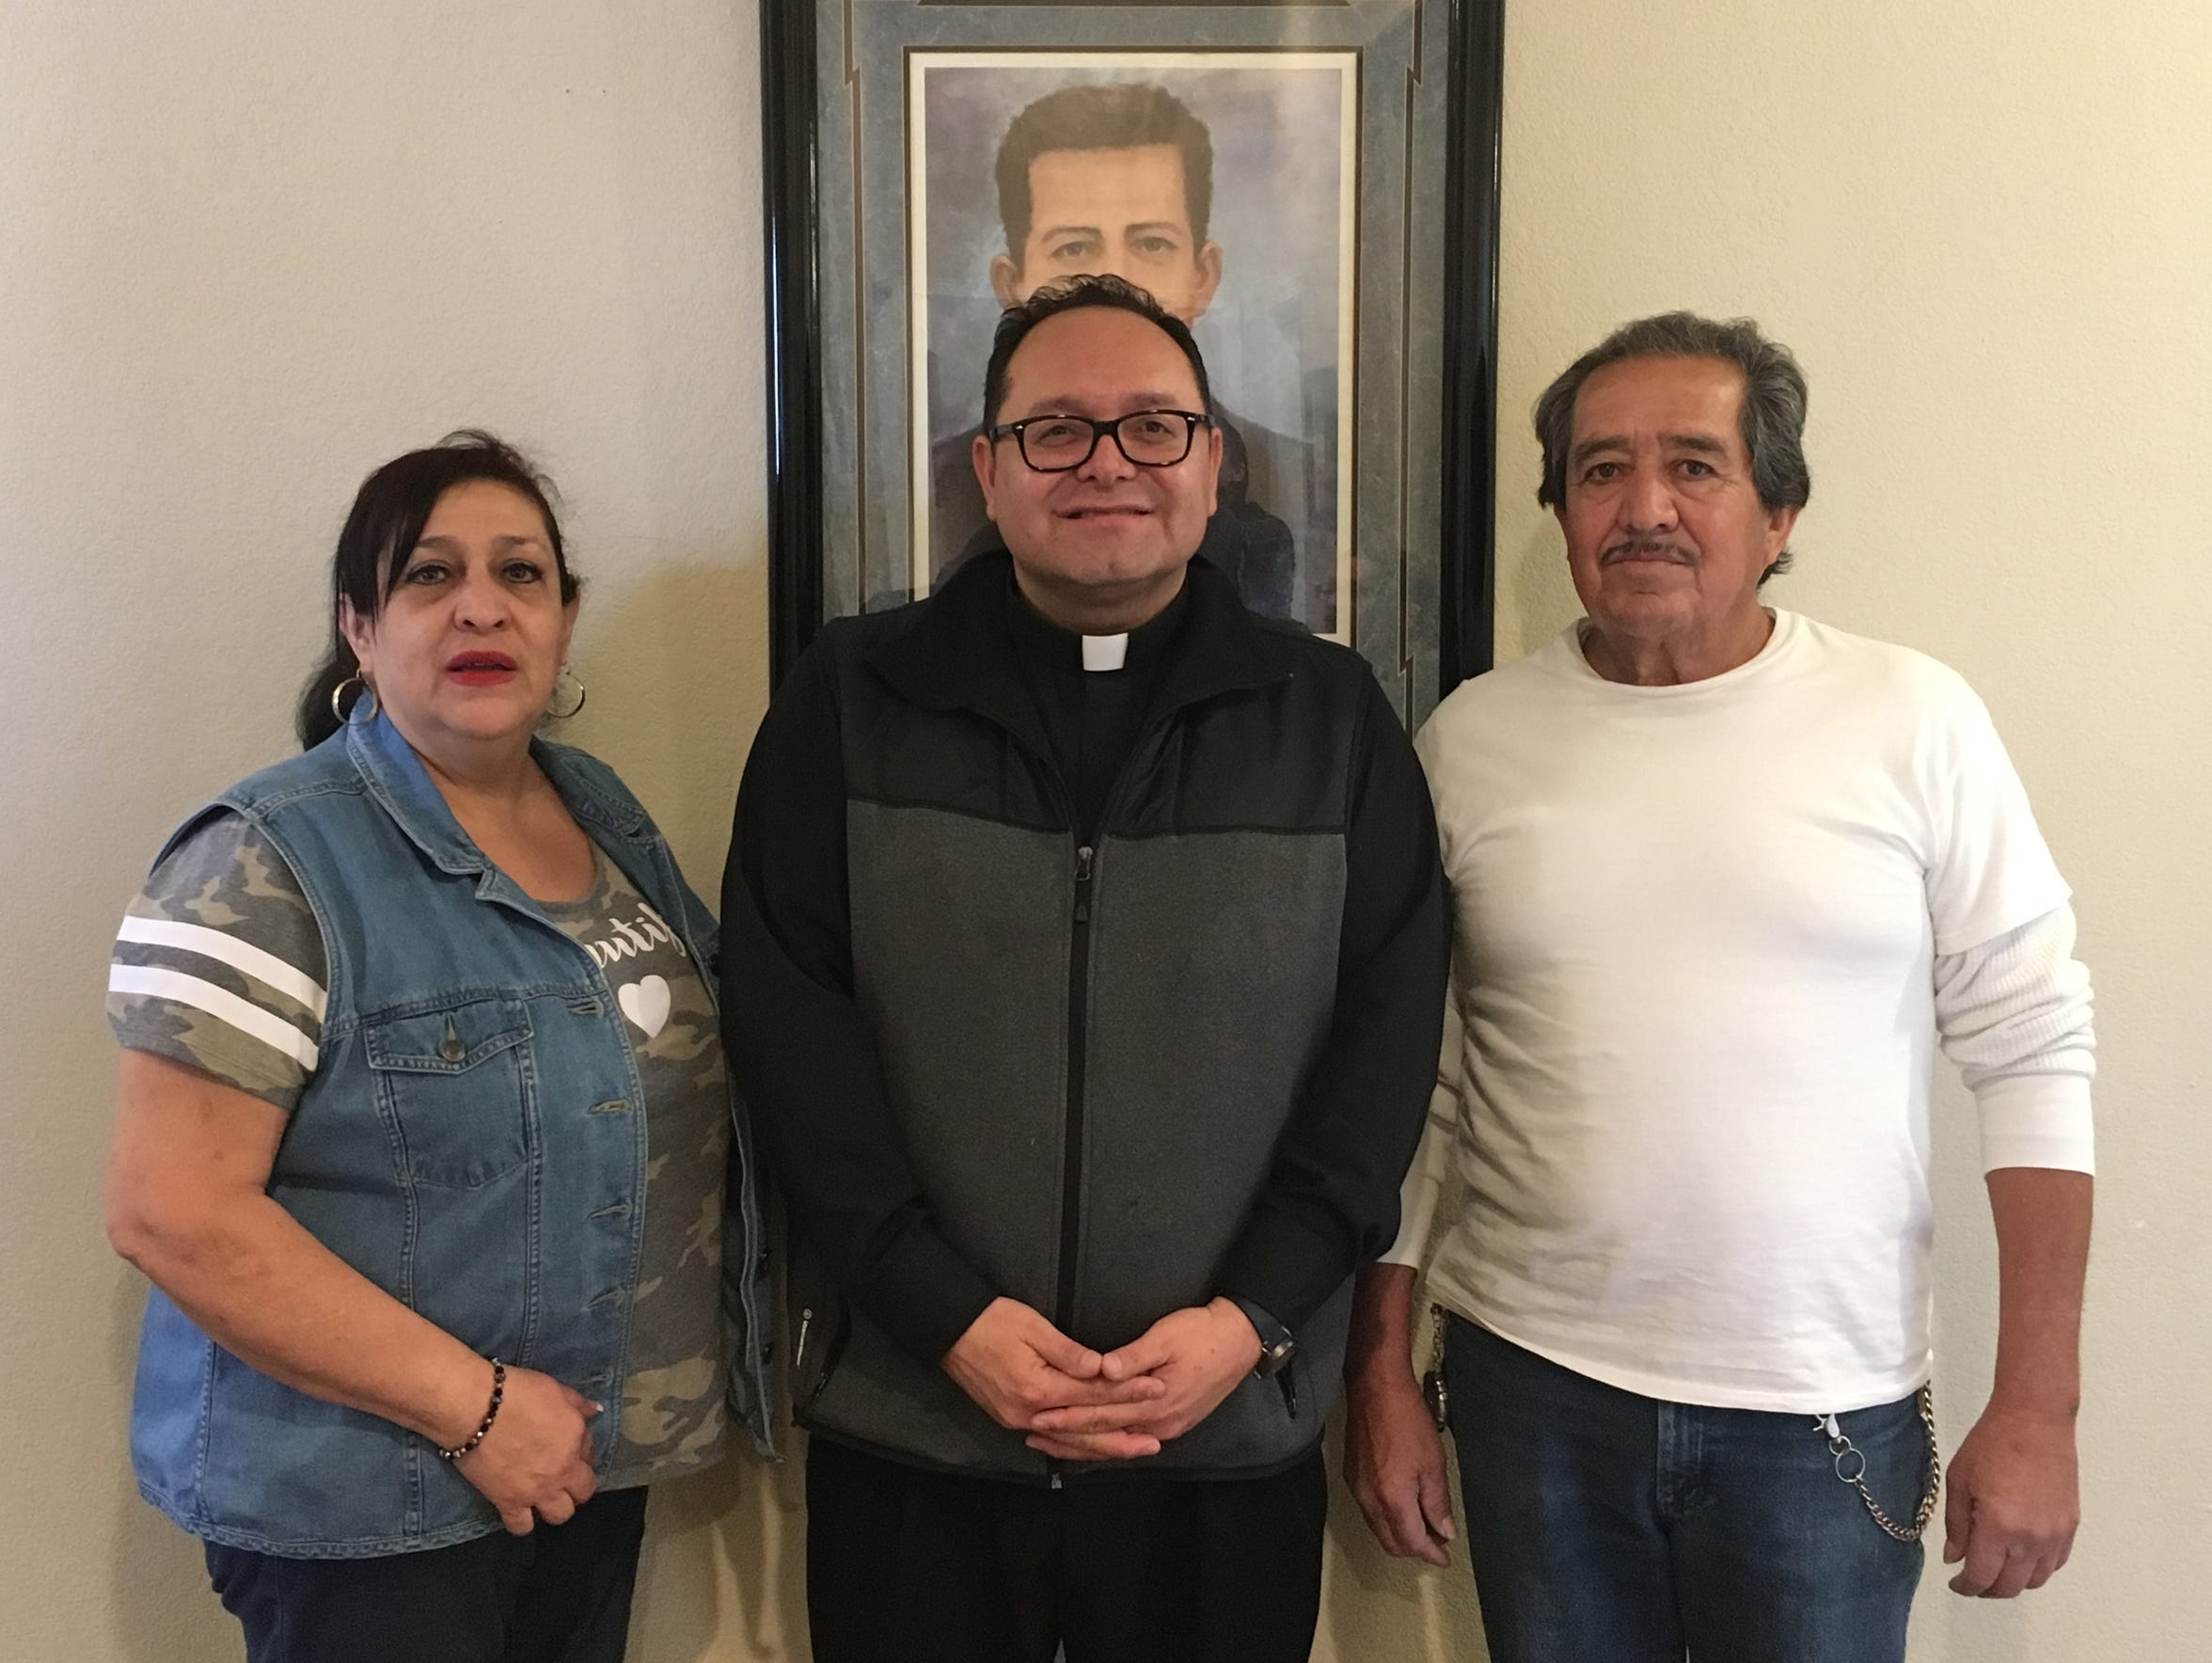 Shown from left are Guadalupe Arvizo, the Rev. Fabian